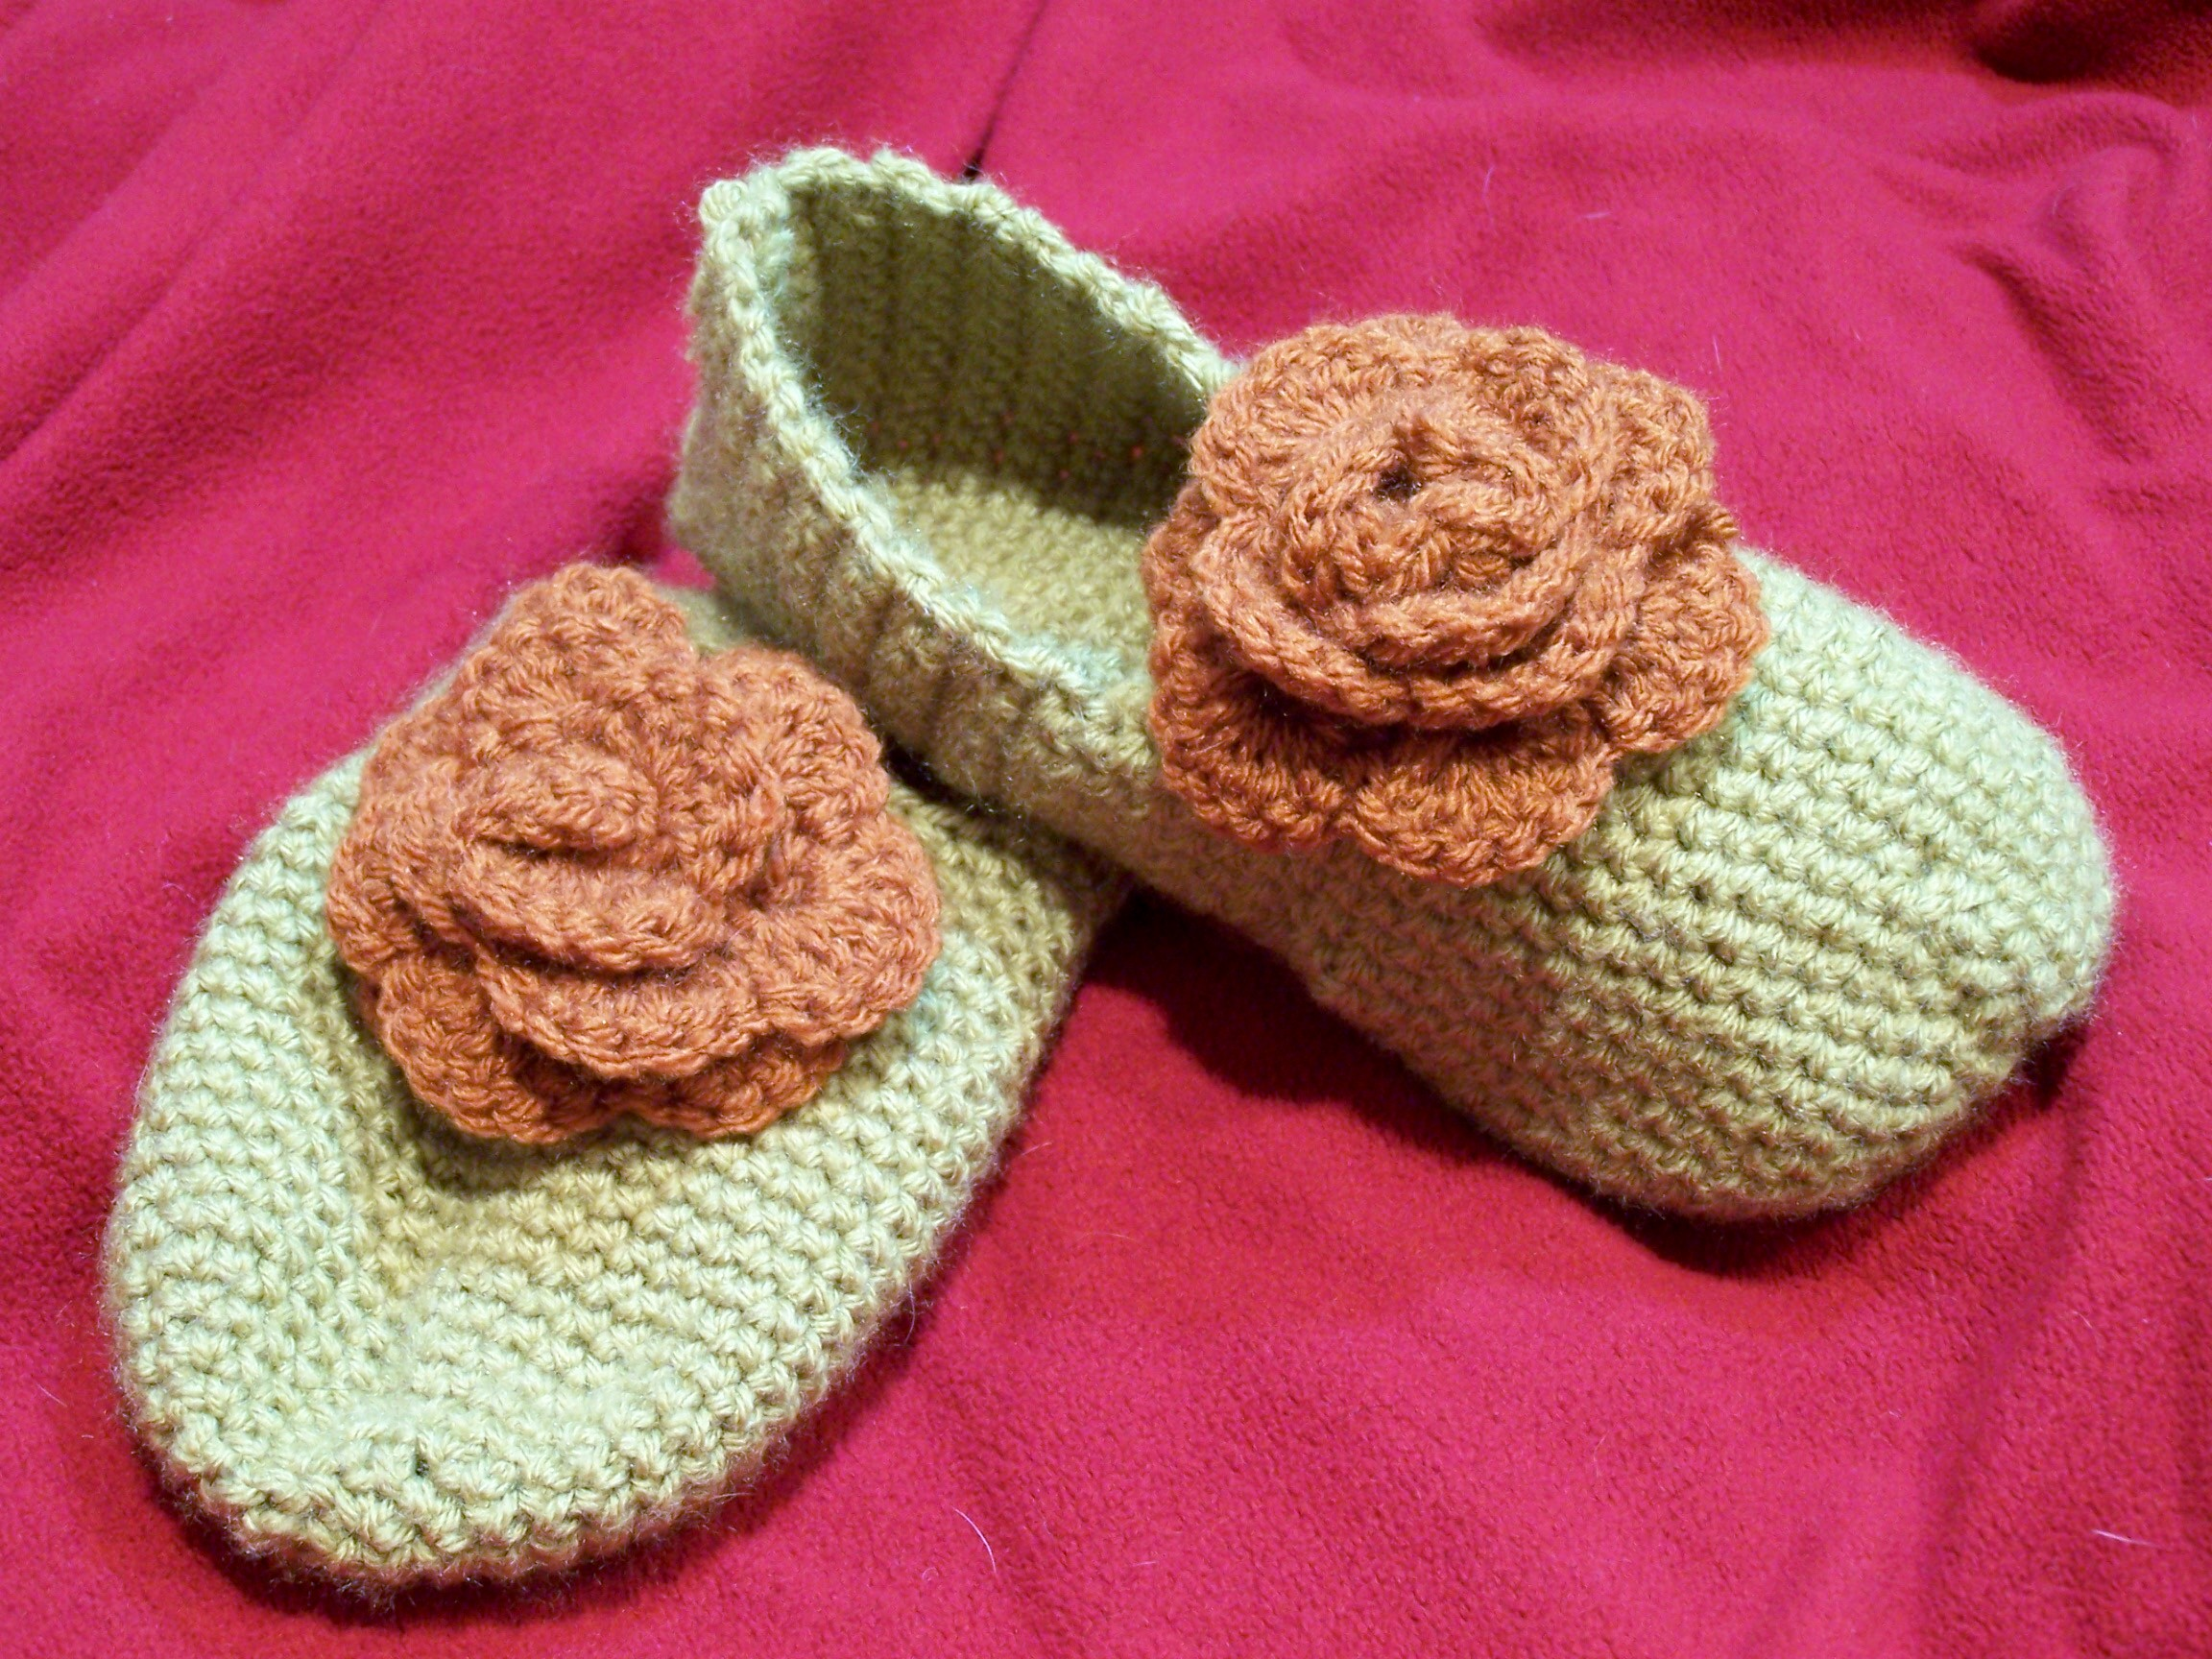 Free Crochet Slipper Patterns - Easy Slippers to Crochet